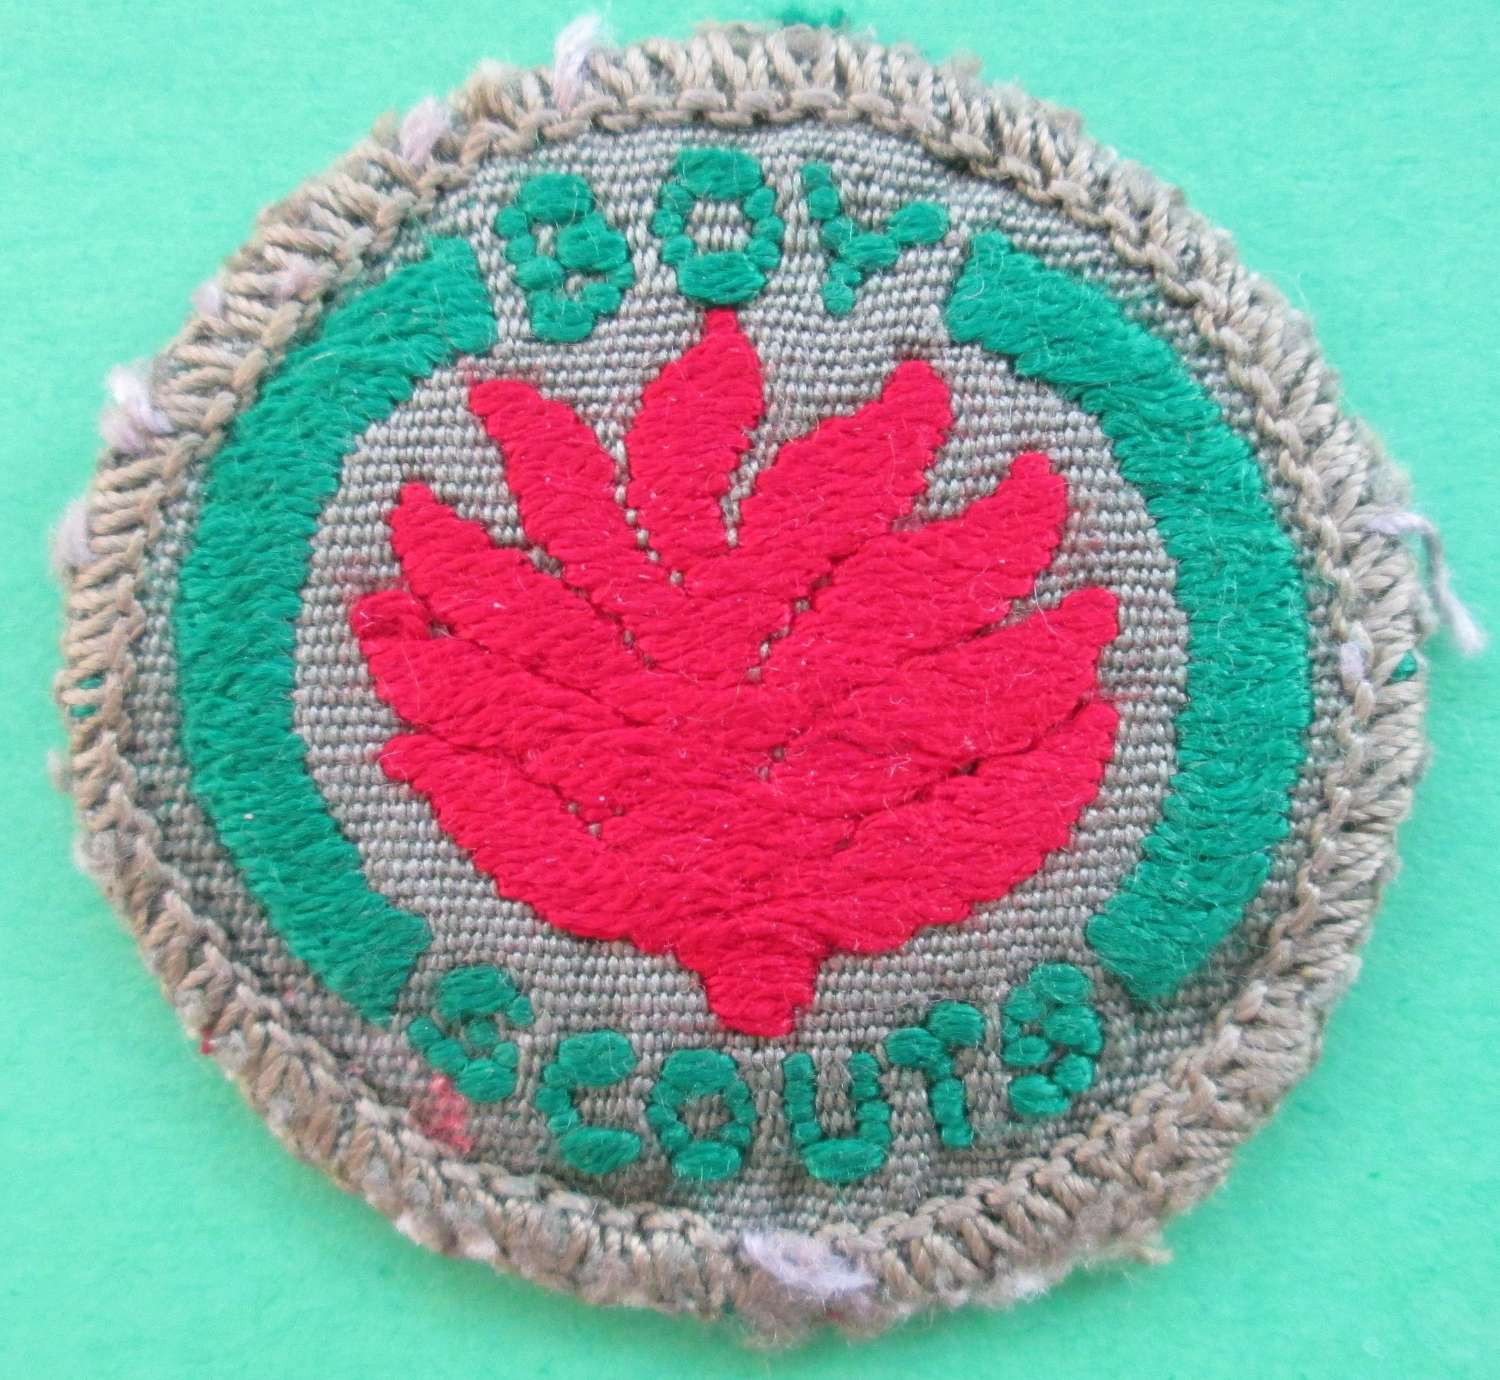 GOOD BOY SCOUTS FIRE SAFETY BADGE